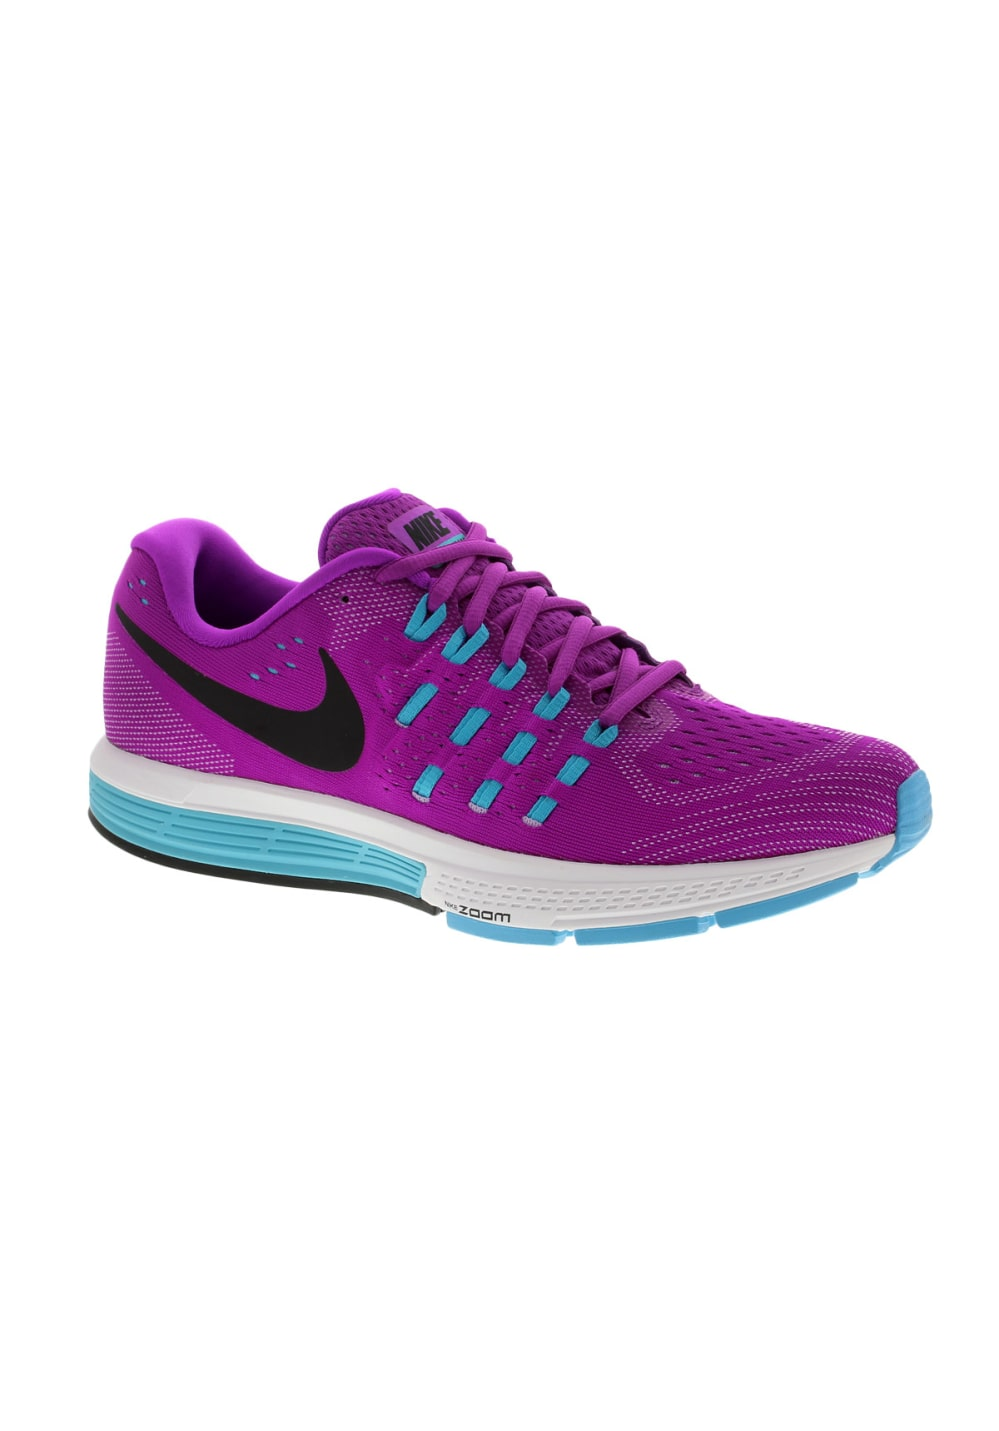 0a8def450ff7 Next. -60%. Nike. Air Zoom Vomero 11 - Running shoes for Women